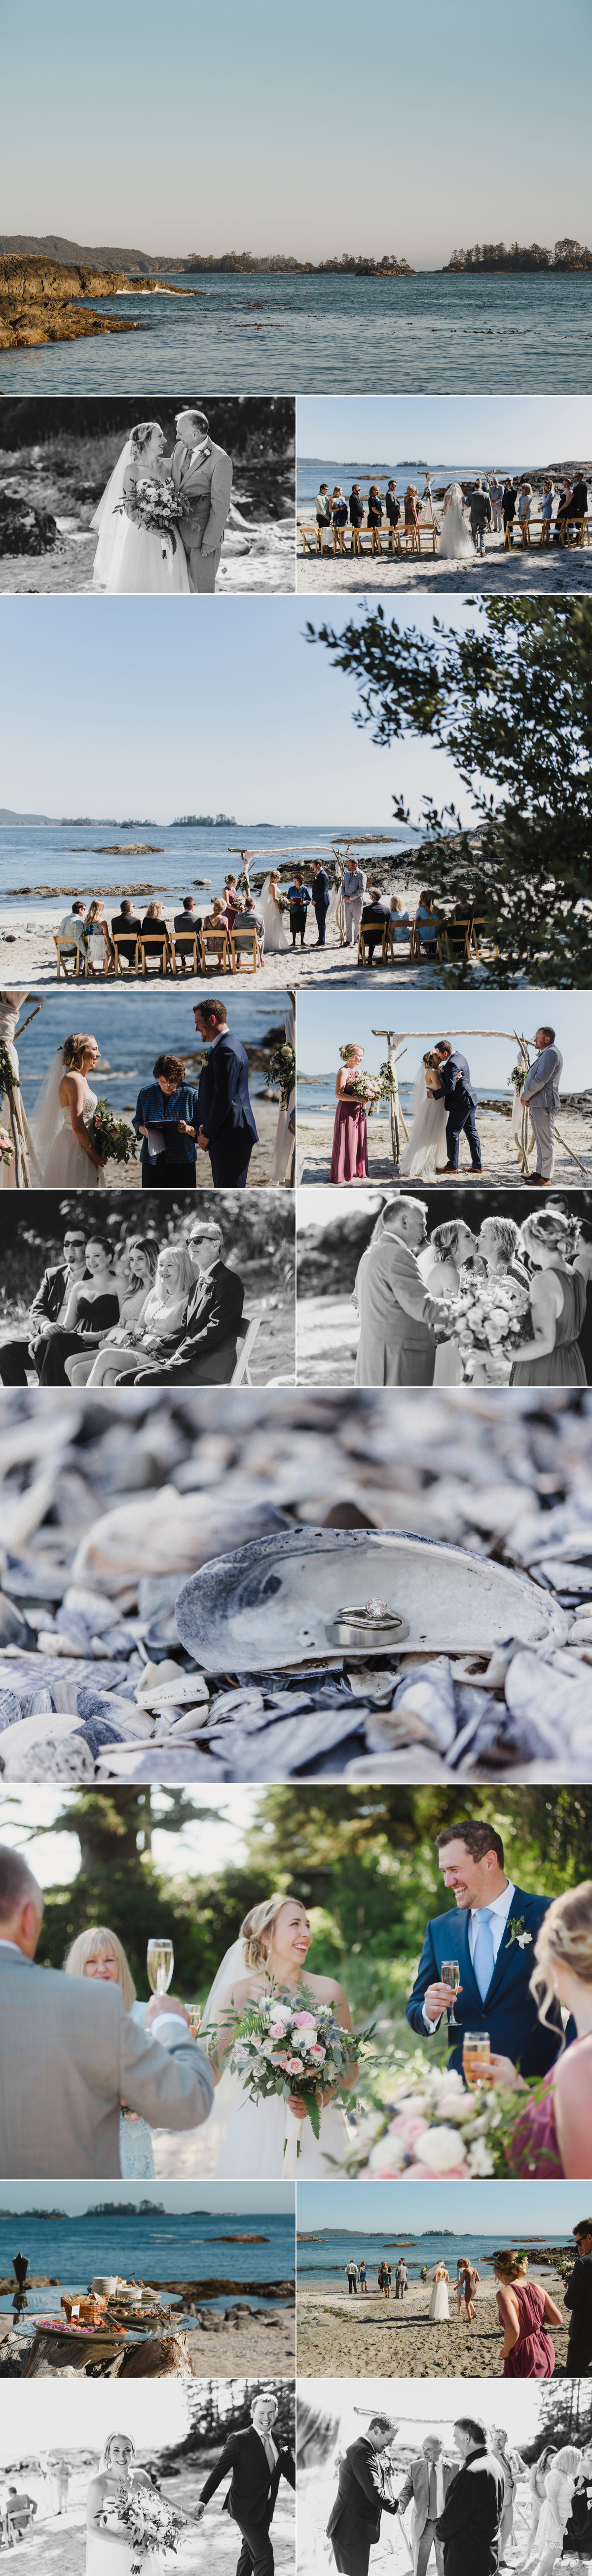 Wickaninnish Inn wedding, shell beach, elopement, tofino, intimate wedding